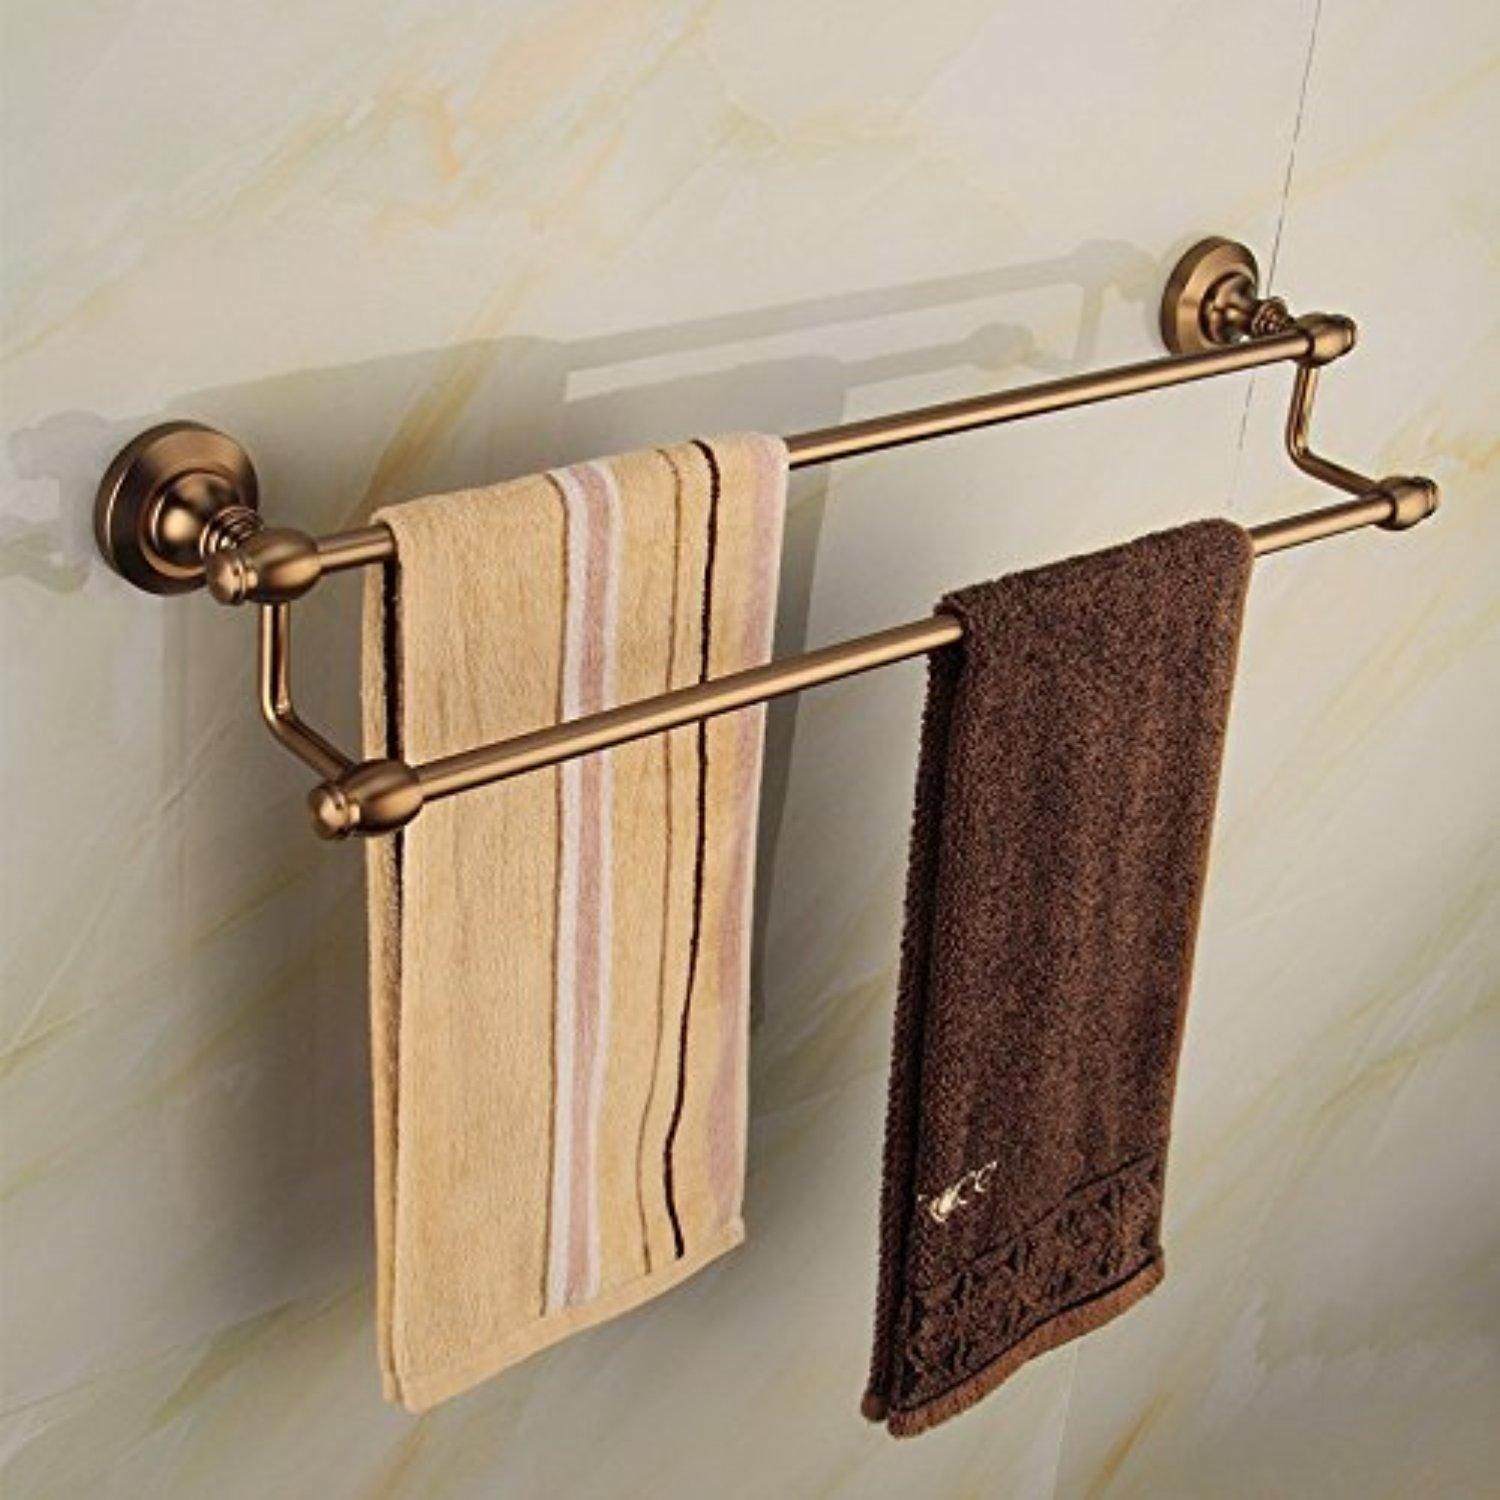 Towel Bar Holder For Bathroom Or Kitchen Organize It All Shelf With ...